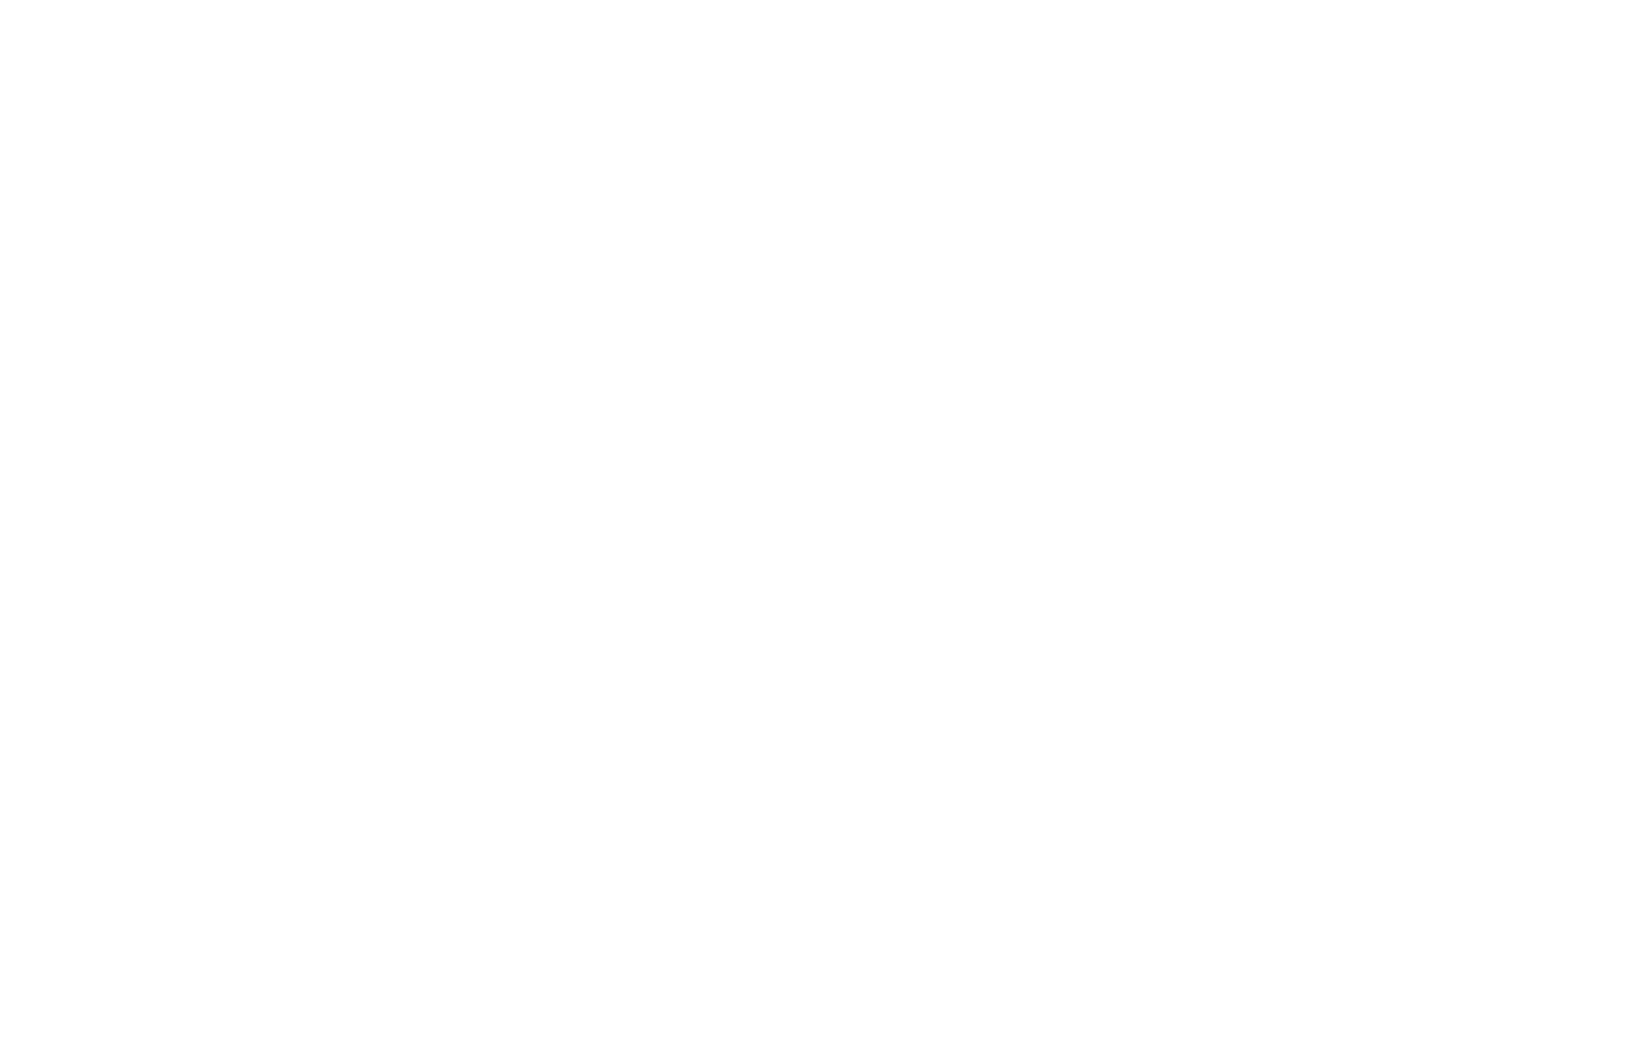 LIV on the Green